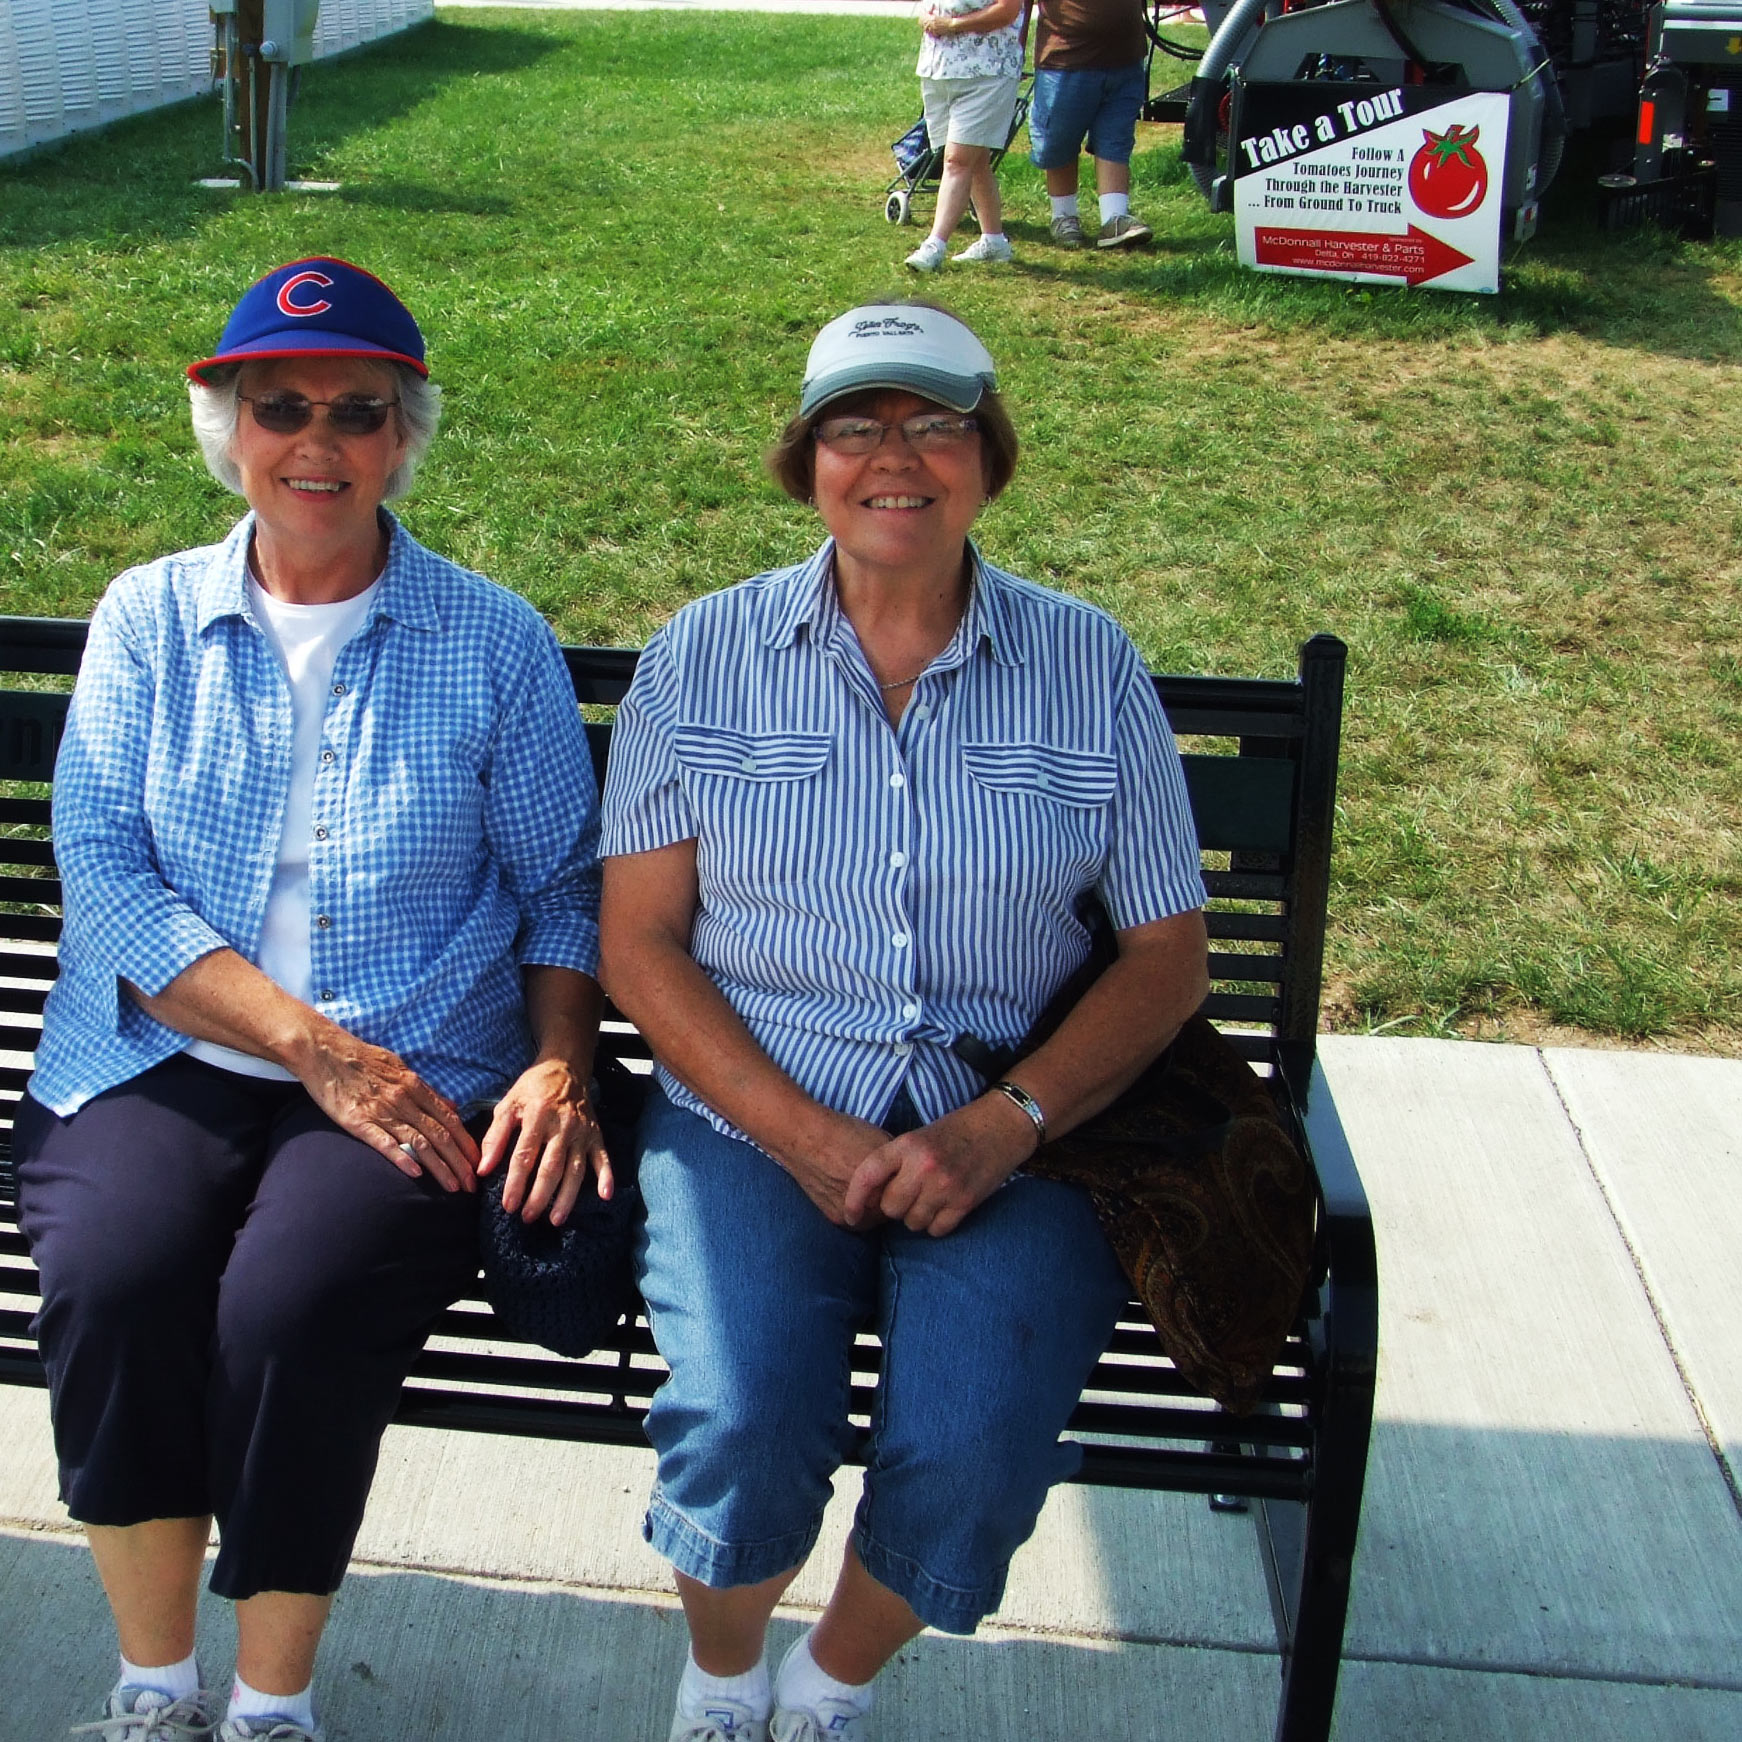 Friends enjoying a donated park bench from OCC Outdoors